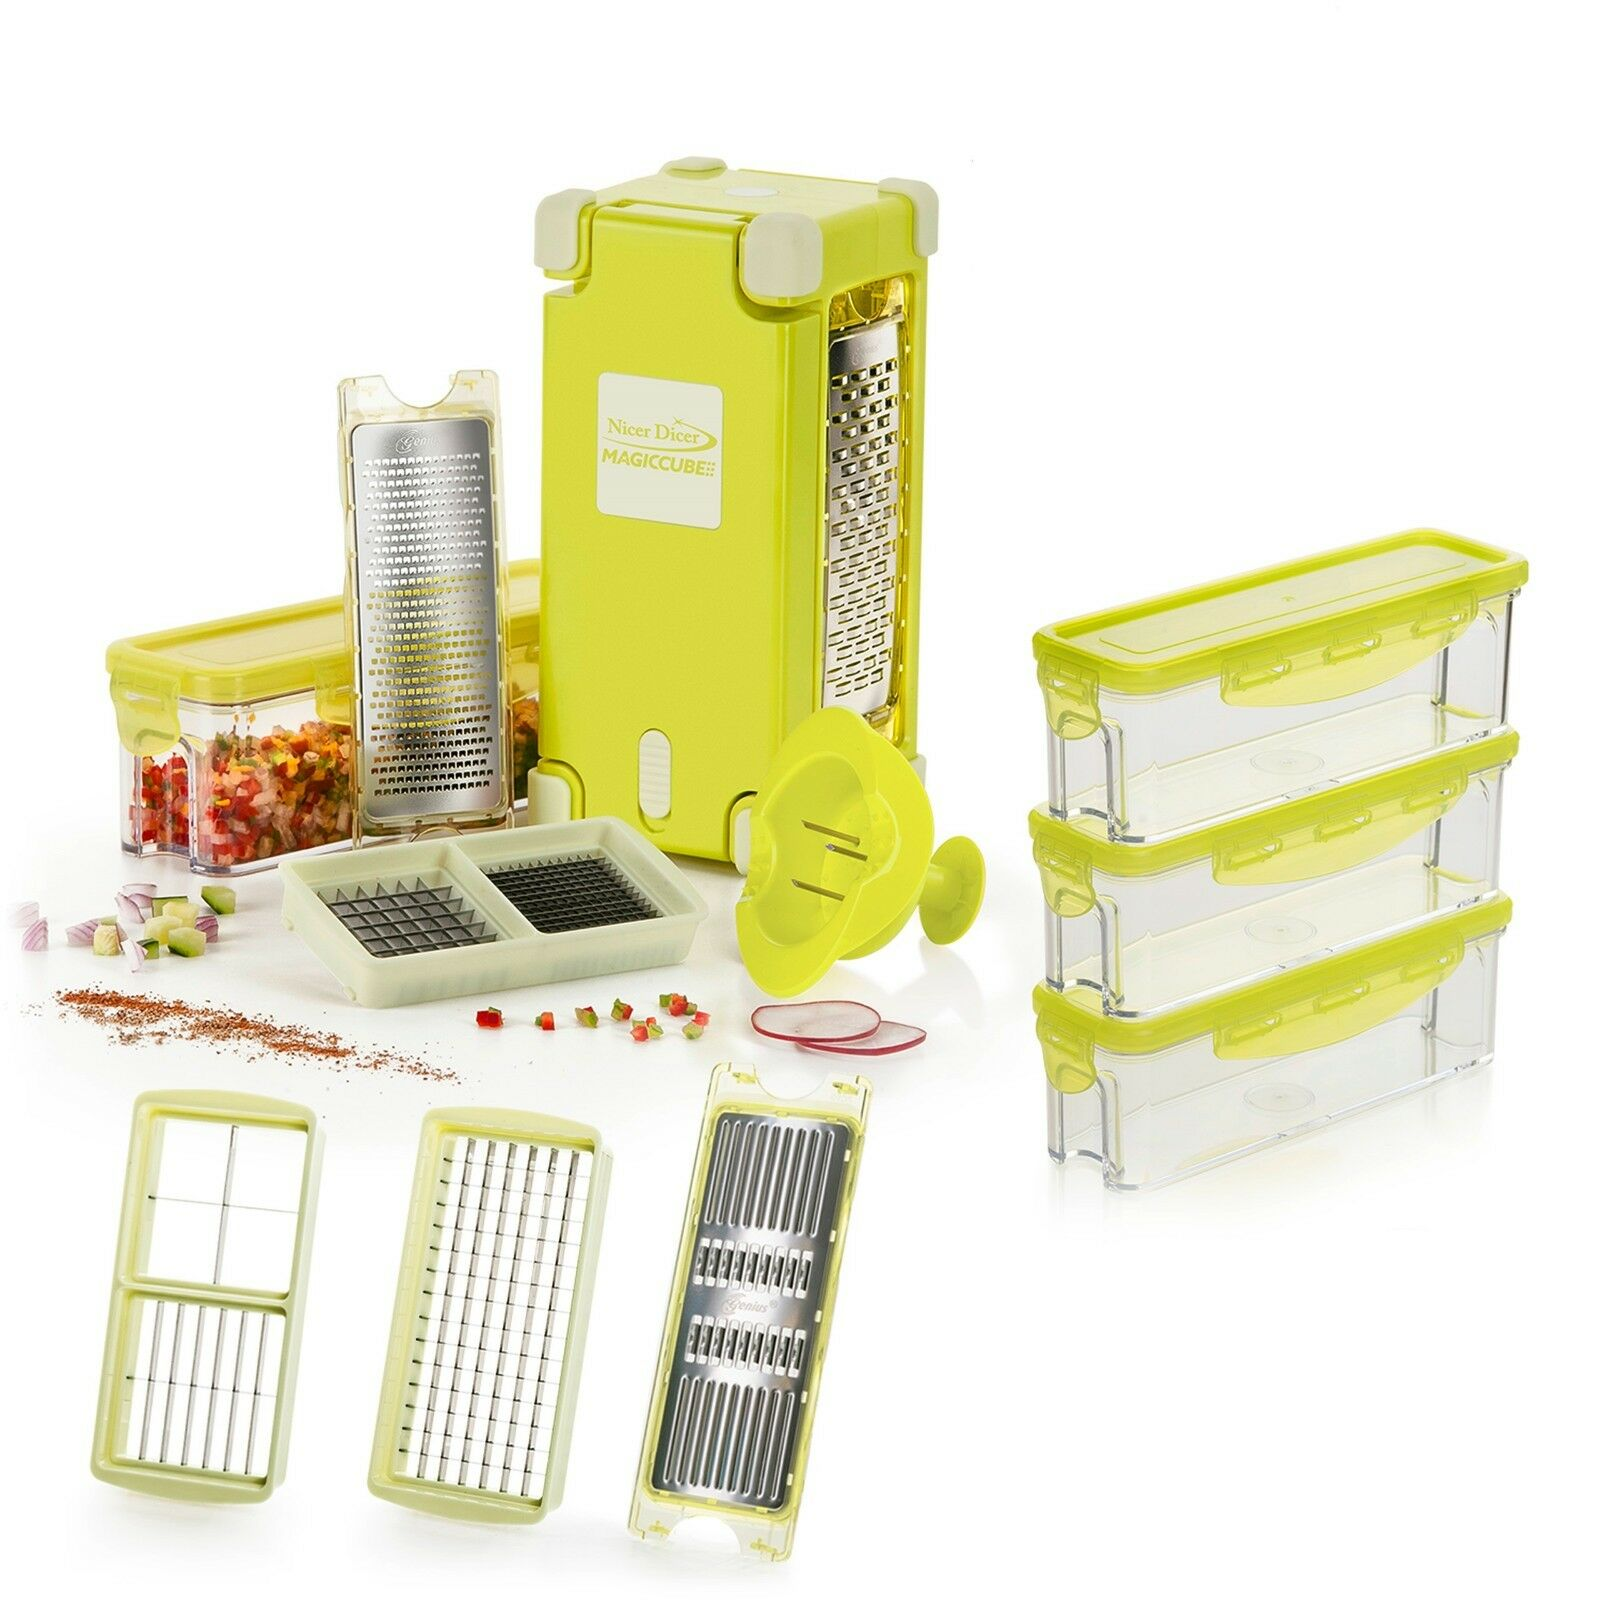 aktionspreis original genius nicer dicer magic cube gourmet xl set 19tlg neu eur 86 80. Black Bedroom Furniture Sets. Home Design Ideas